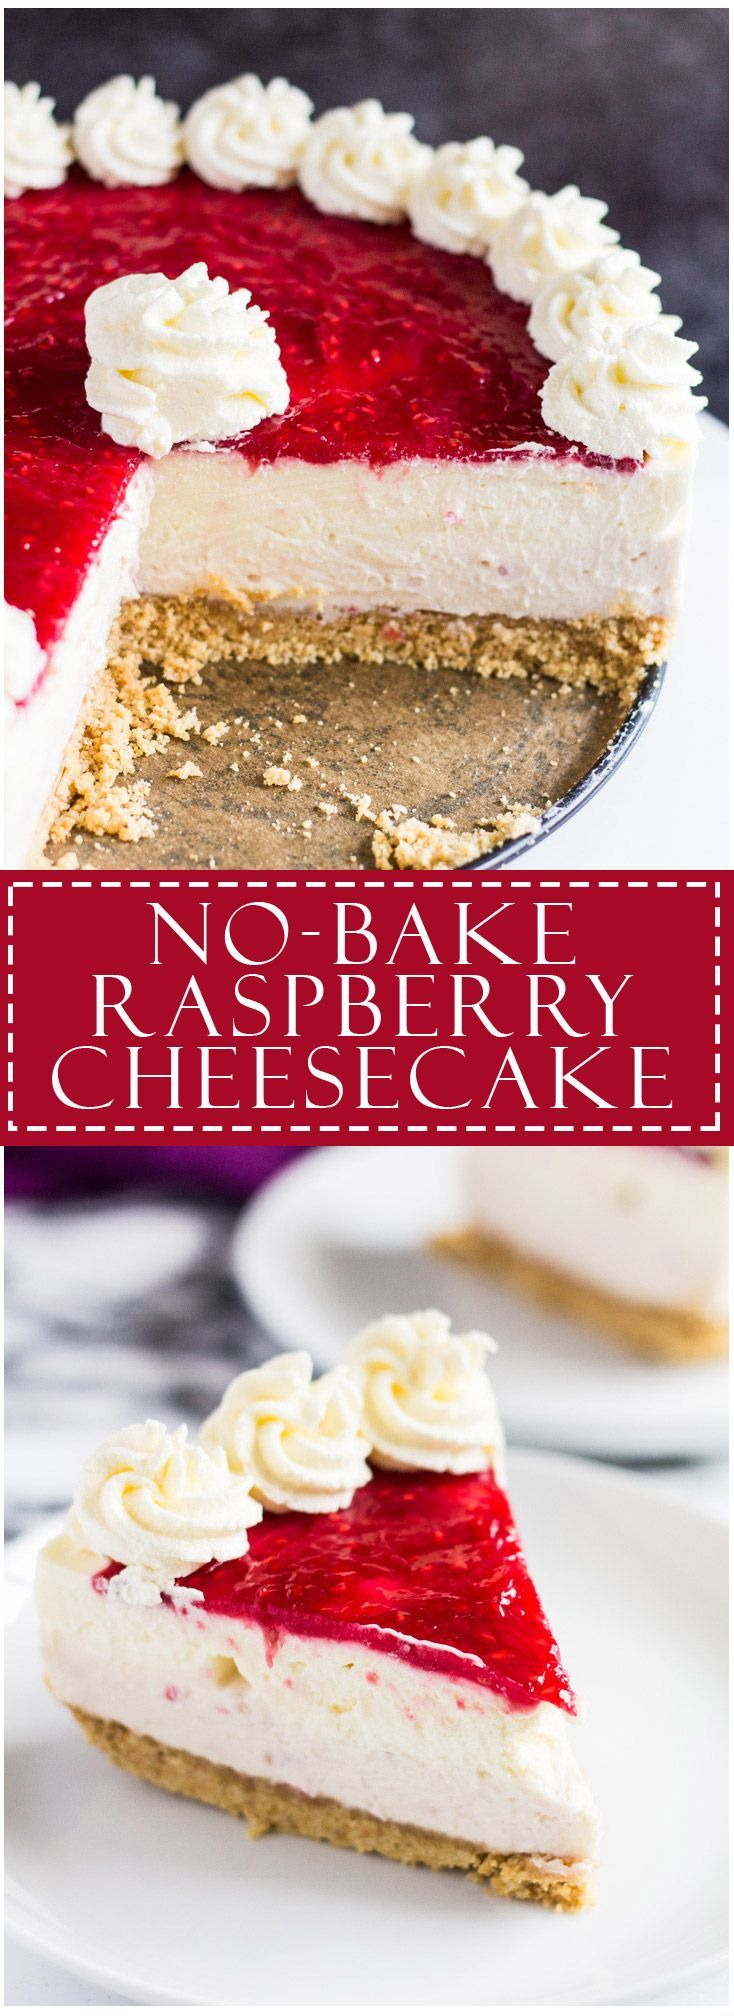 No-Bake White Chocolate Raspberry Cheesecake | marshasbakingaddiction.com…